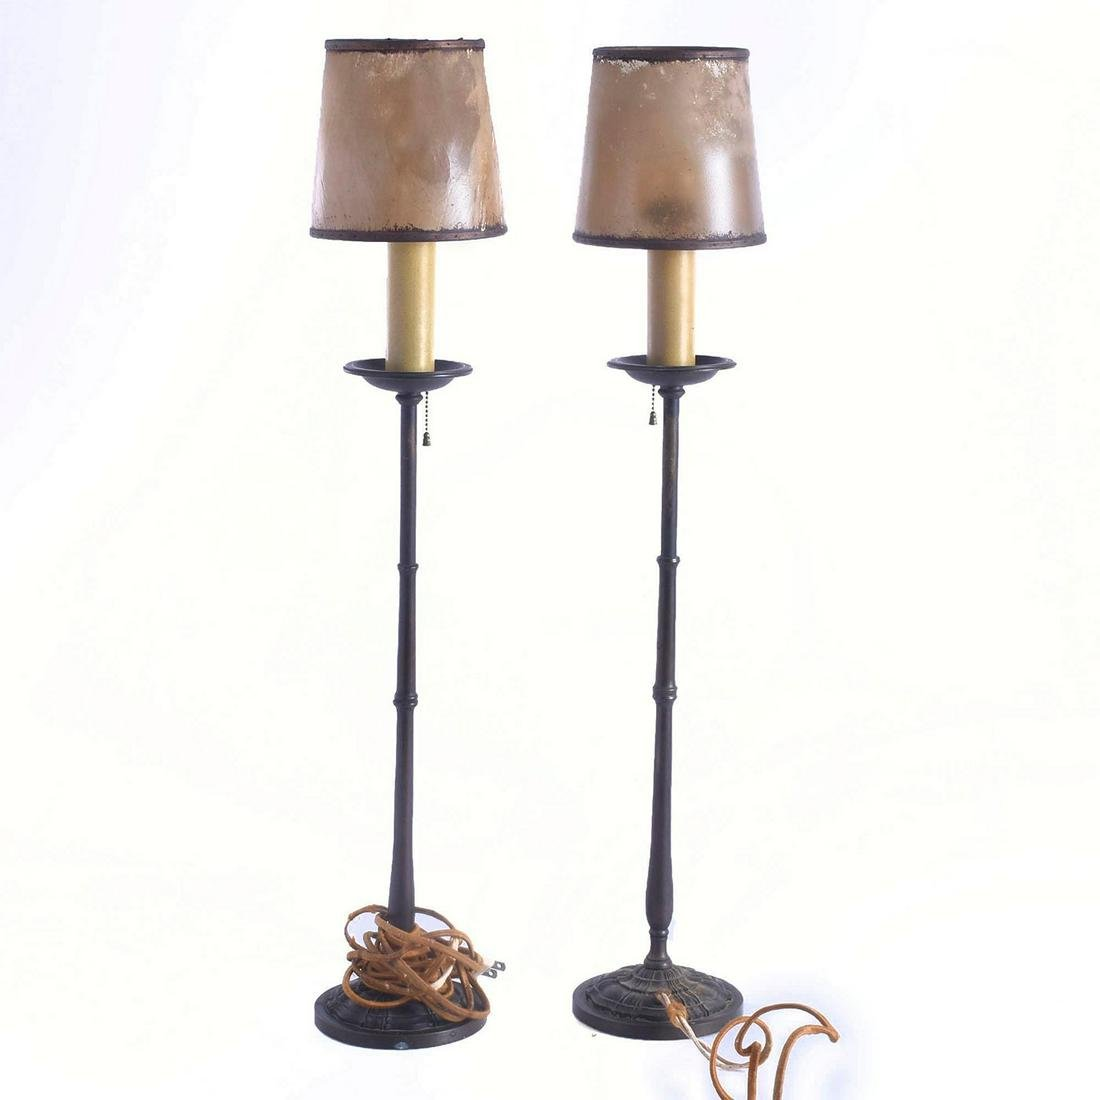 2 SLIM GOTHIC STYLE BRONZE LAMPS WITH RAWHIDE SHADES